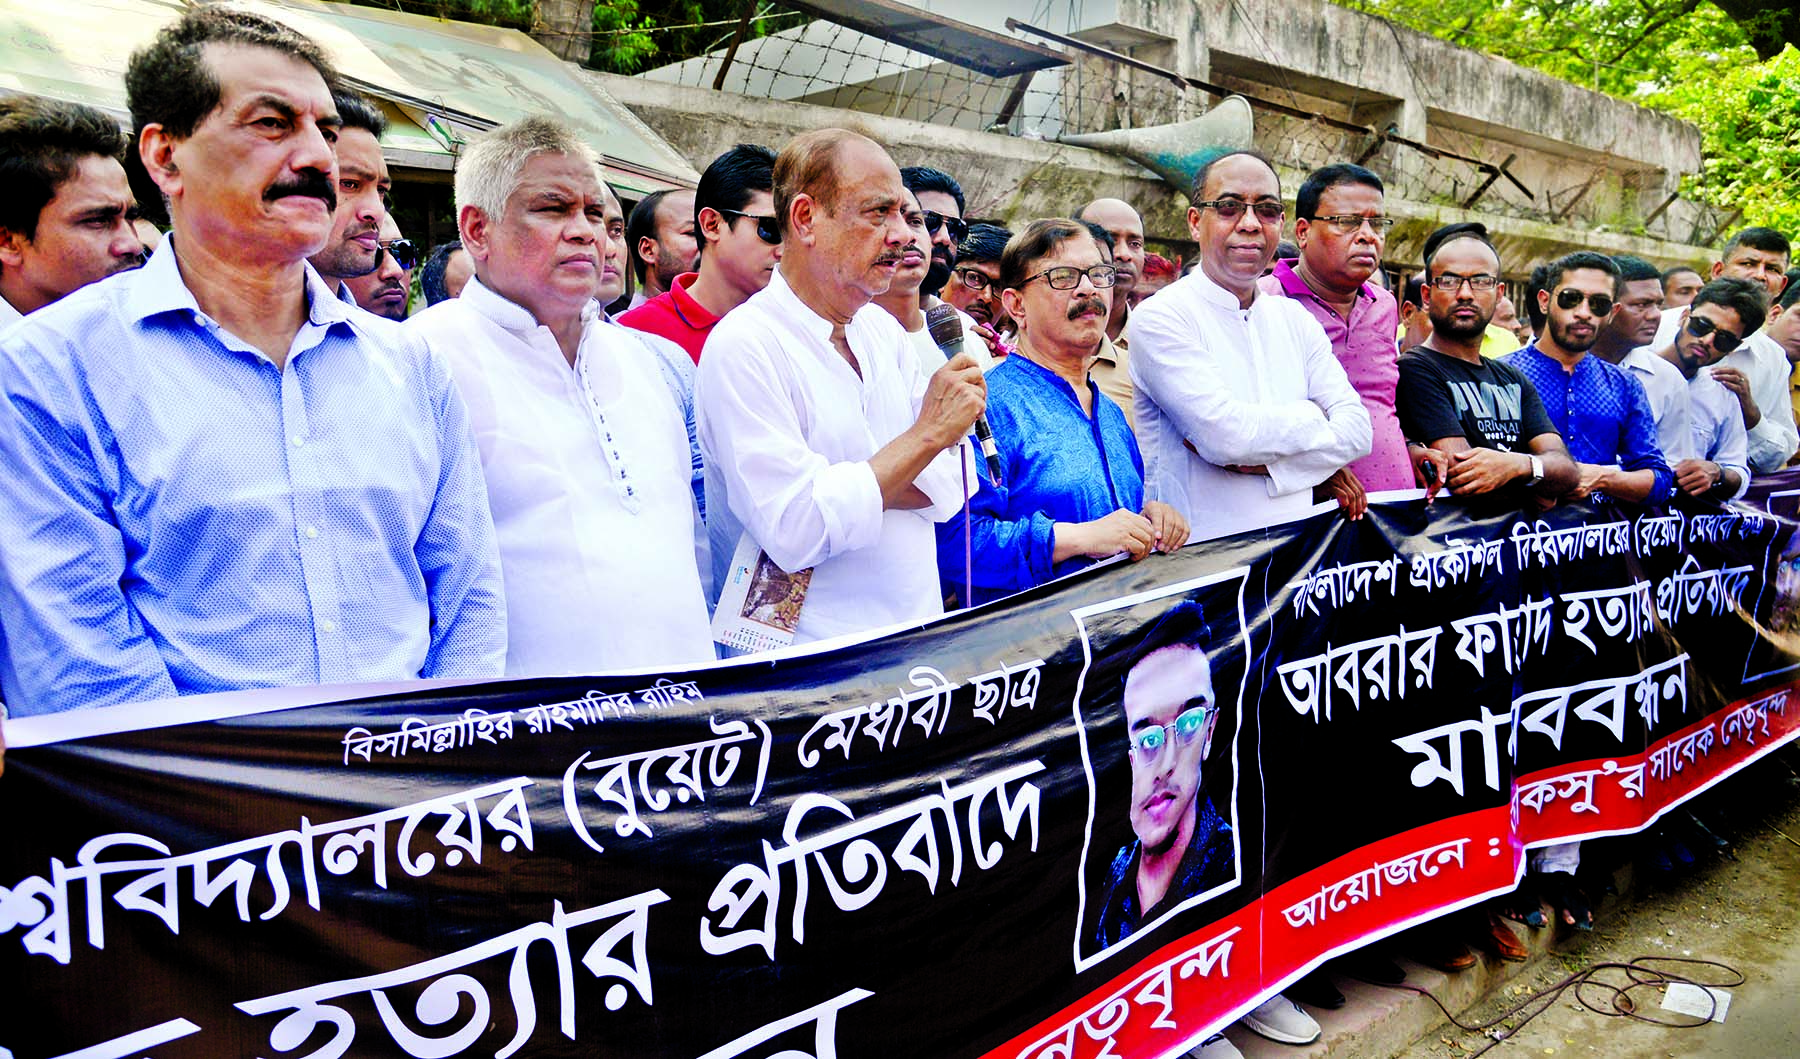 Former leaders of DUCSU formed a human chain in front of the Jatiya Press Club on Thursday in protest against killing of BUET student Abrar Fahad.